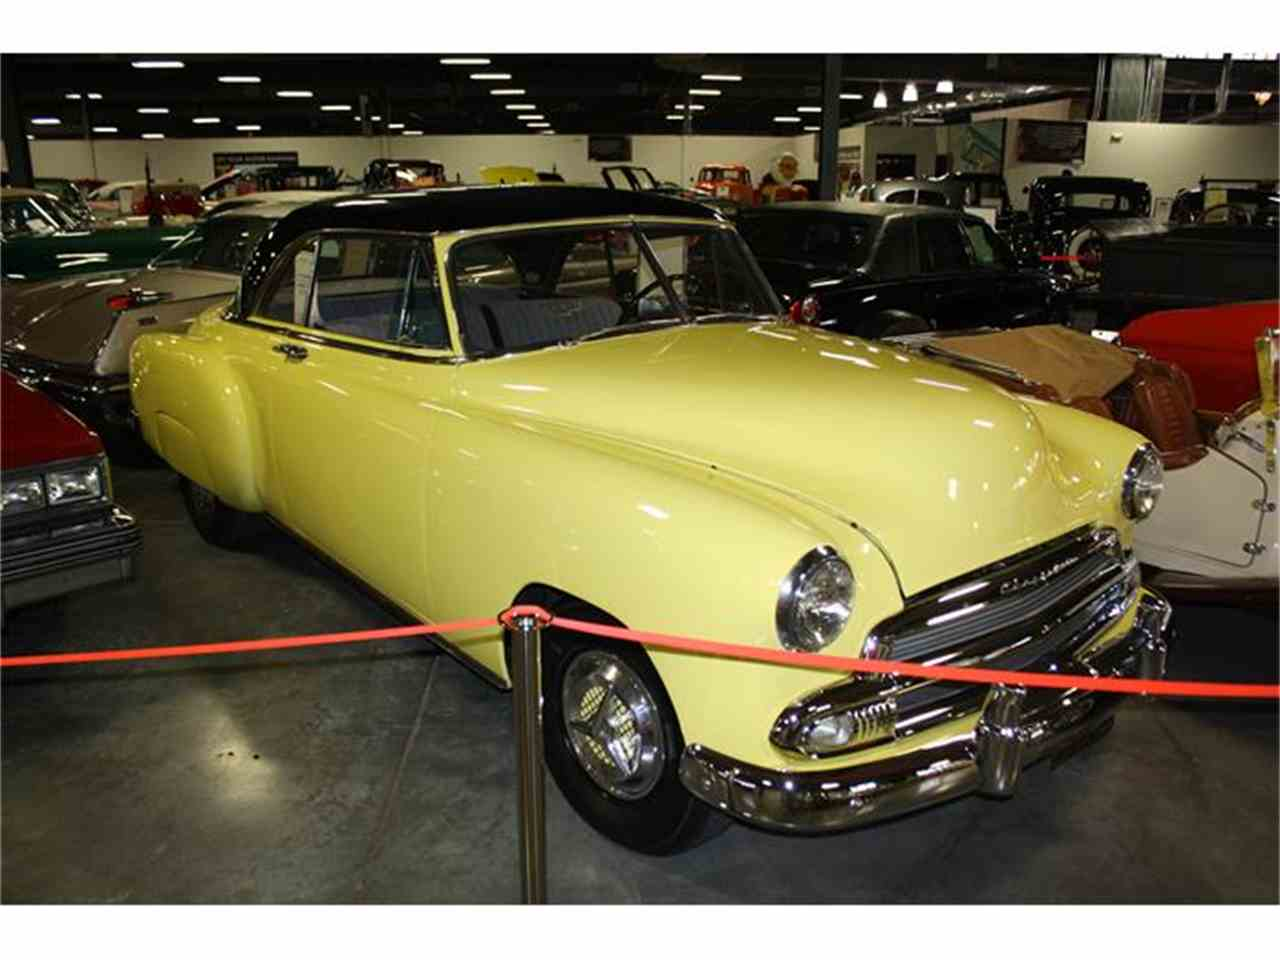 All Chevy 1951 chevy deluxe for sale : 1951 Chevrolet Deluxe for Sale on ClassicCars.com